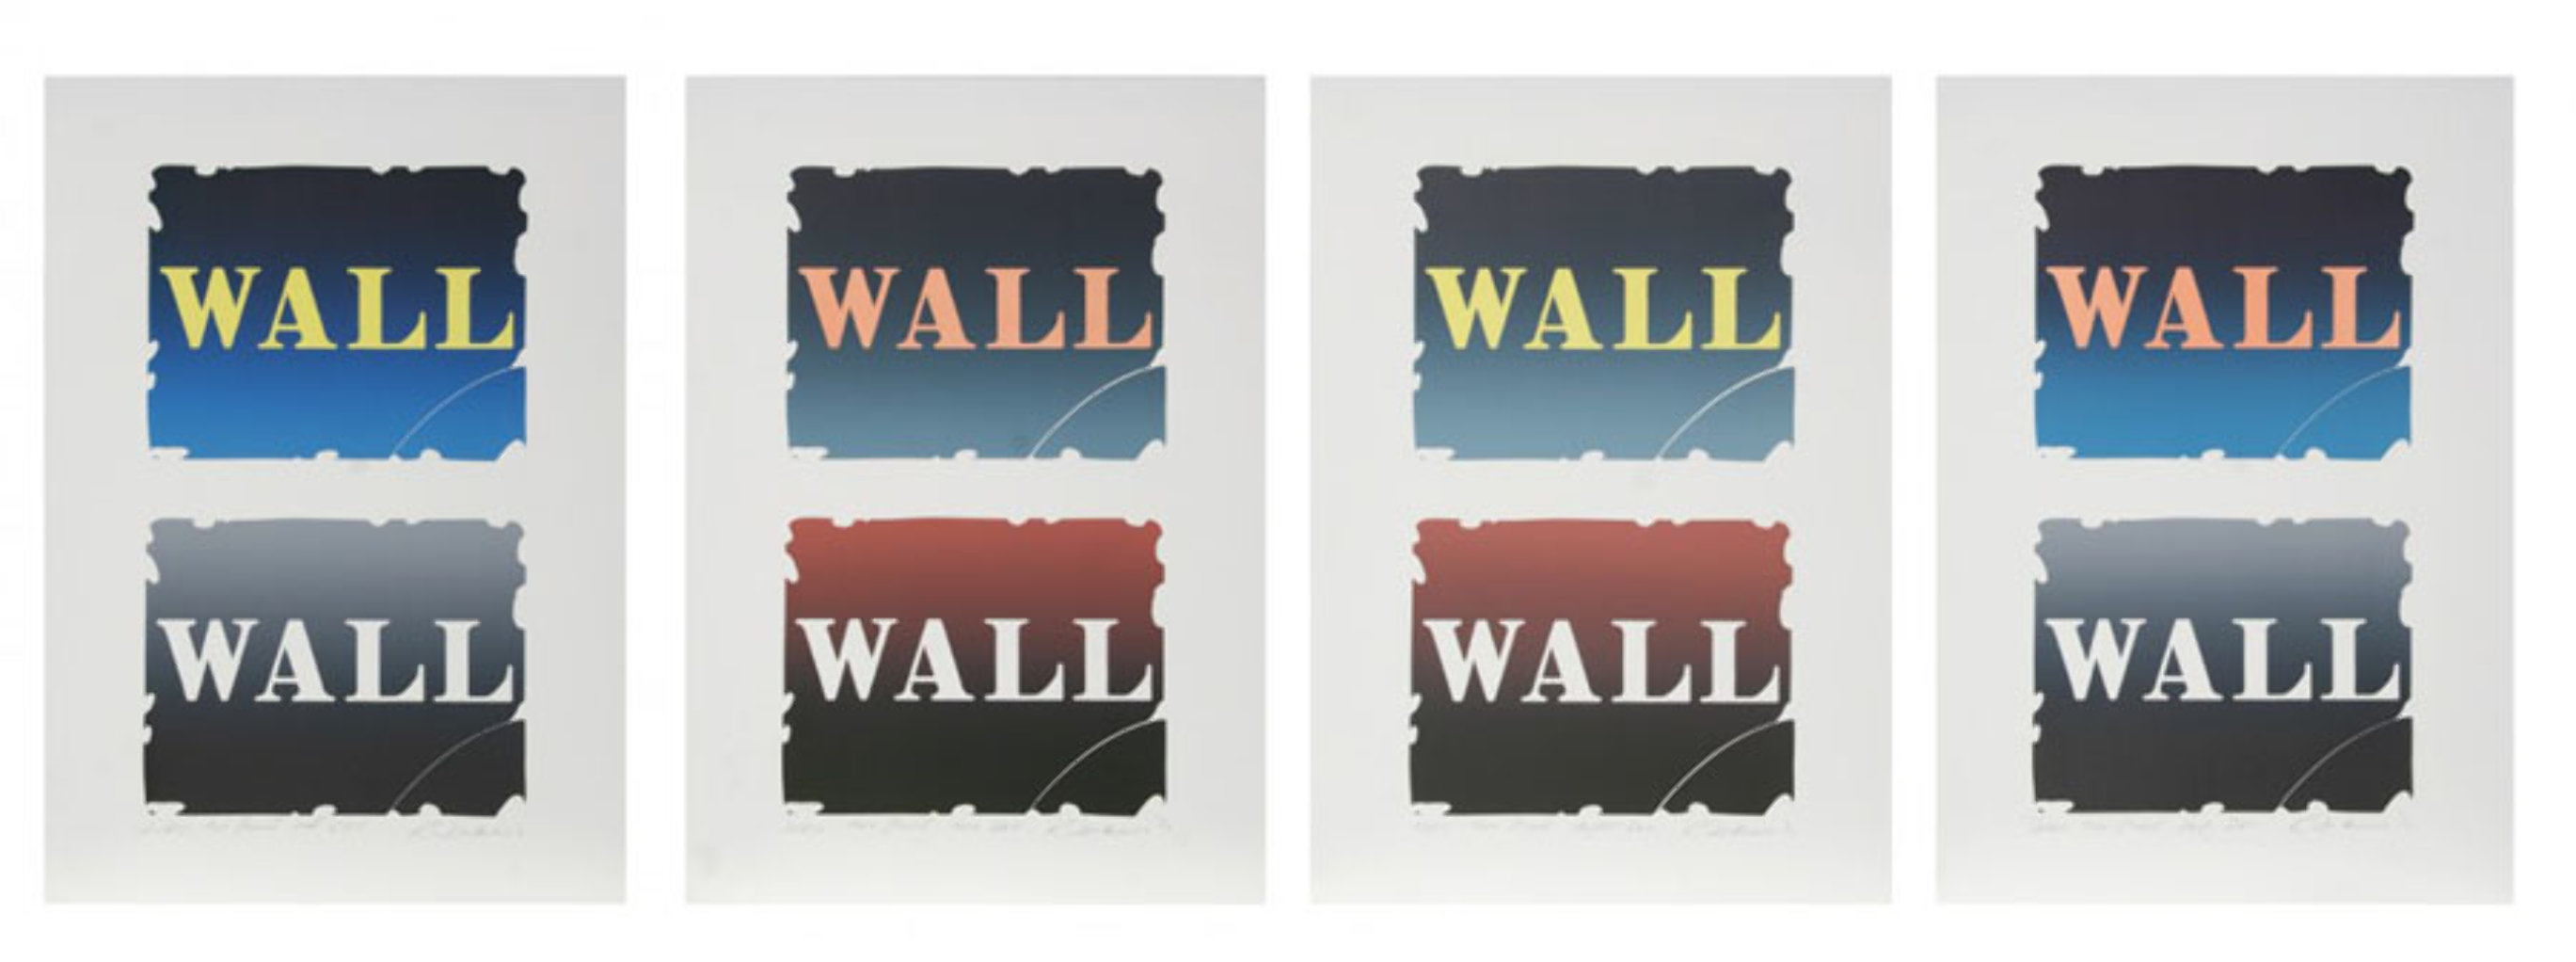 Wall: Two Stone Suite of 4 BAT 1990  Limited Edition Print by Robert Indiana